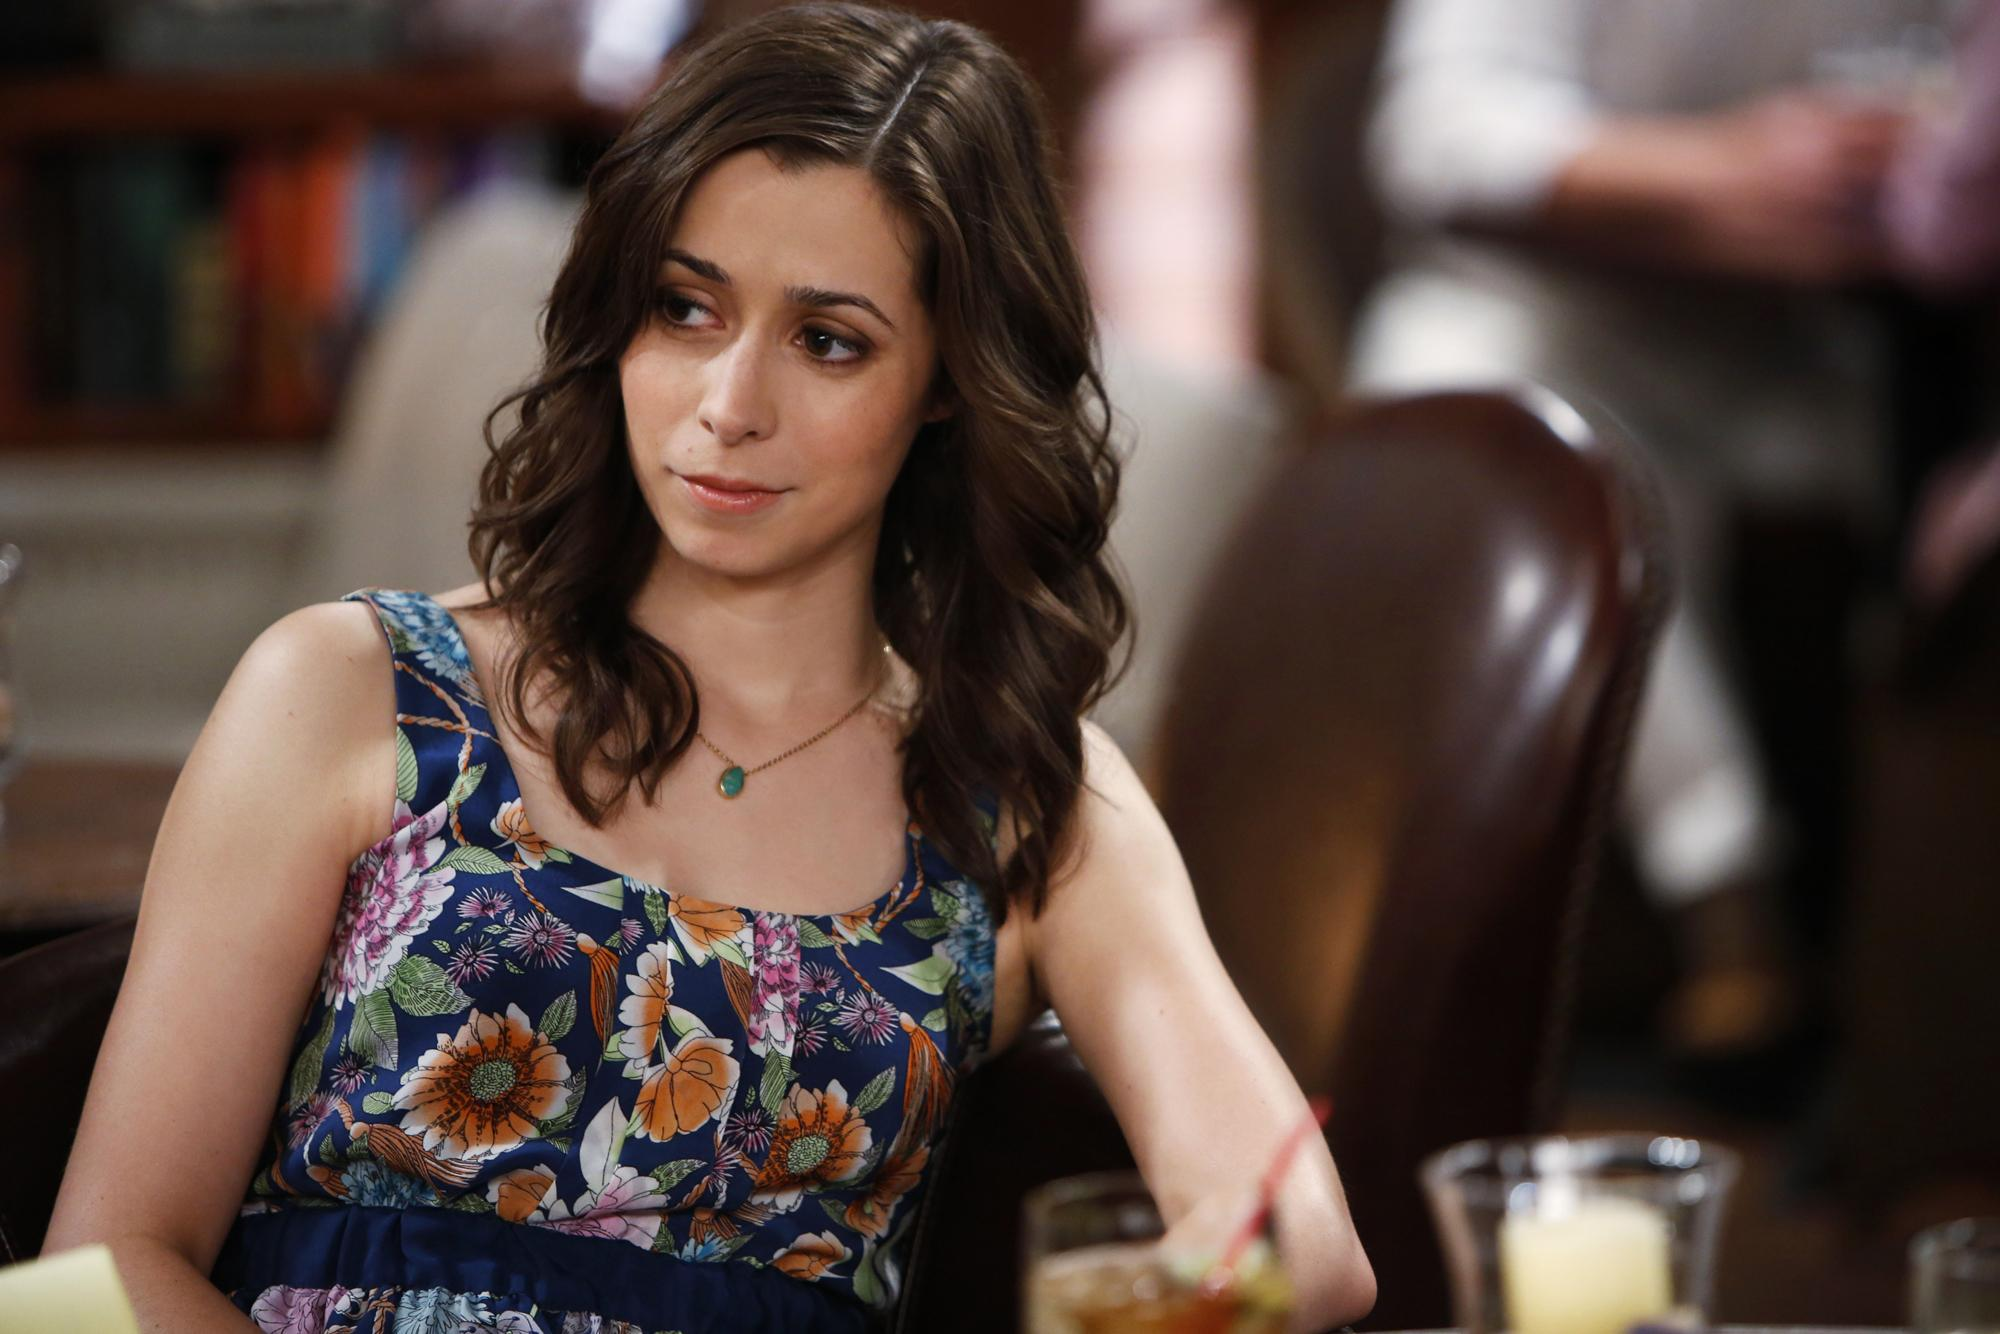 How I Met Your Mother spinoff is back in development